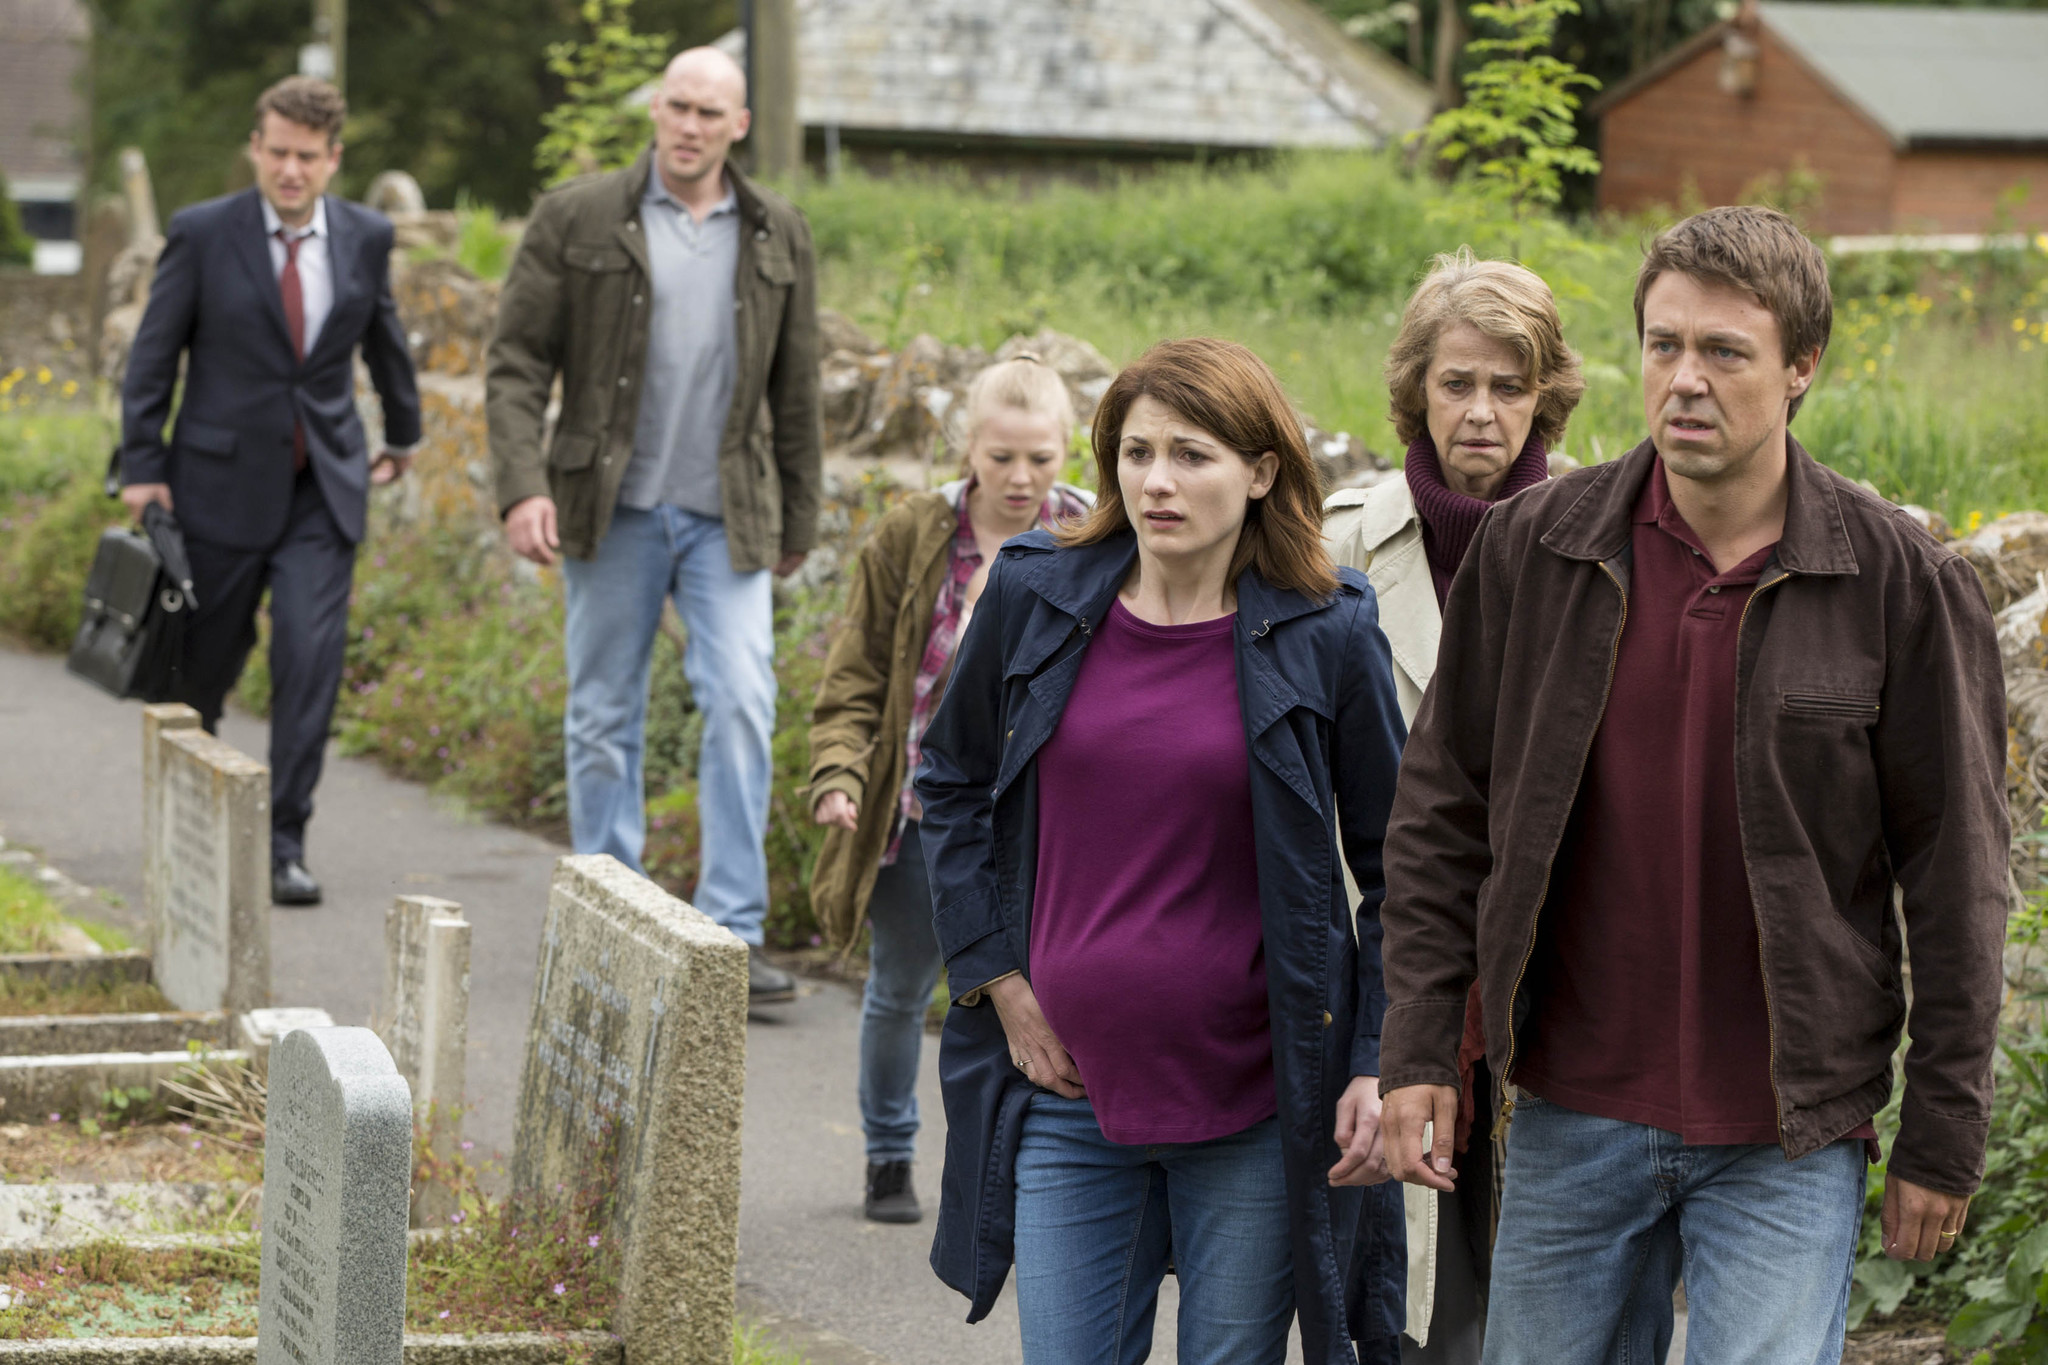 Charlotte Rampling, Joe Sims, William Andrews, Jodie Whittaker, Andrew Buchan, and Charlotte Beaumont in Broadchurch (2013)